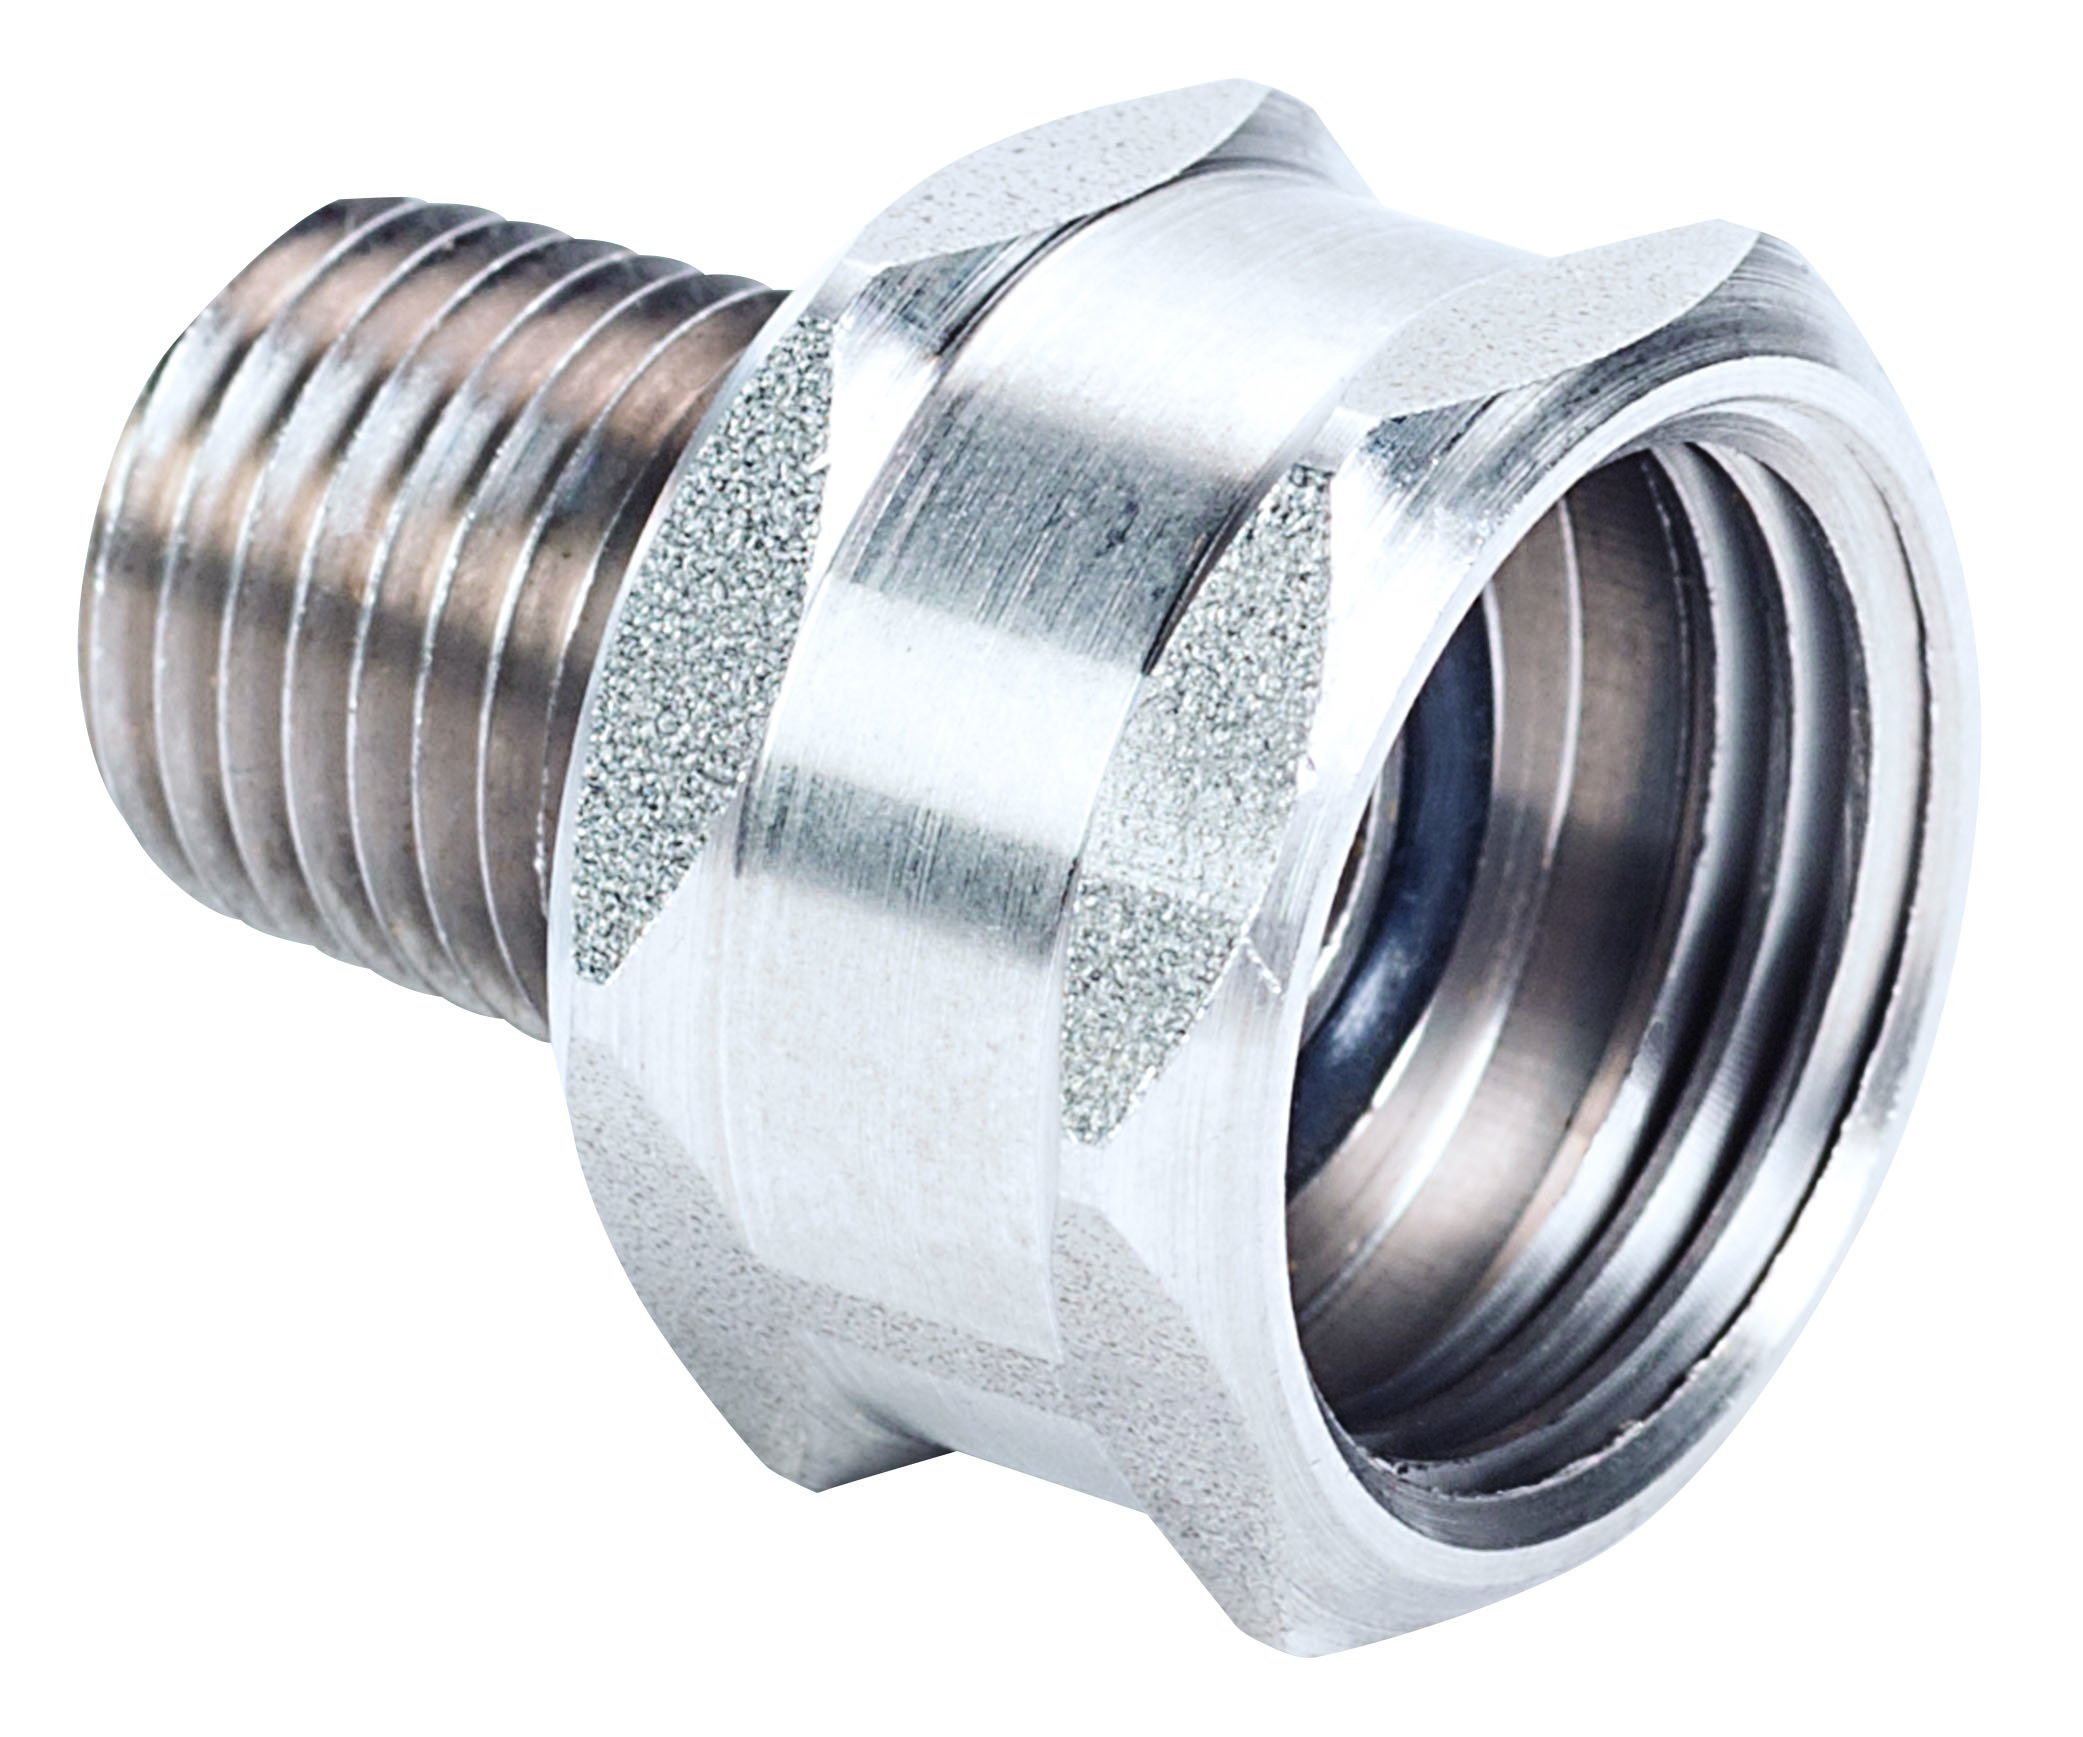 MSA 808360 Stainless Steel Union Adapter, 1/4 NPTM x 3/4 Hose